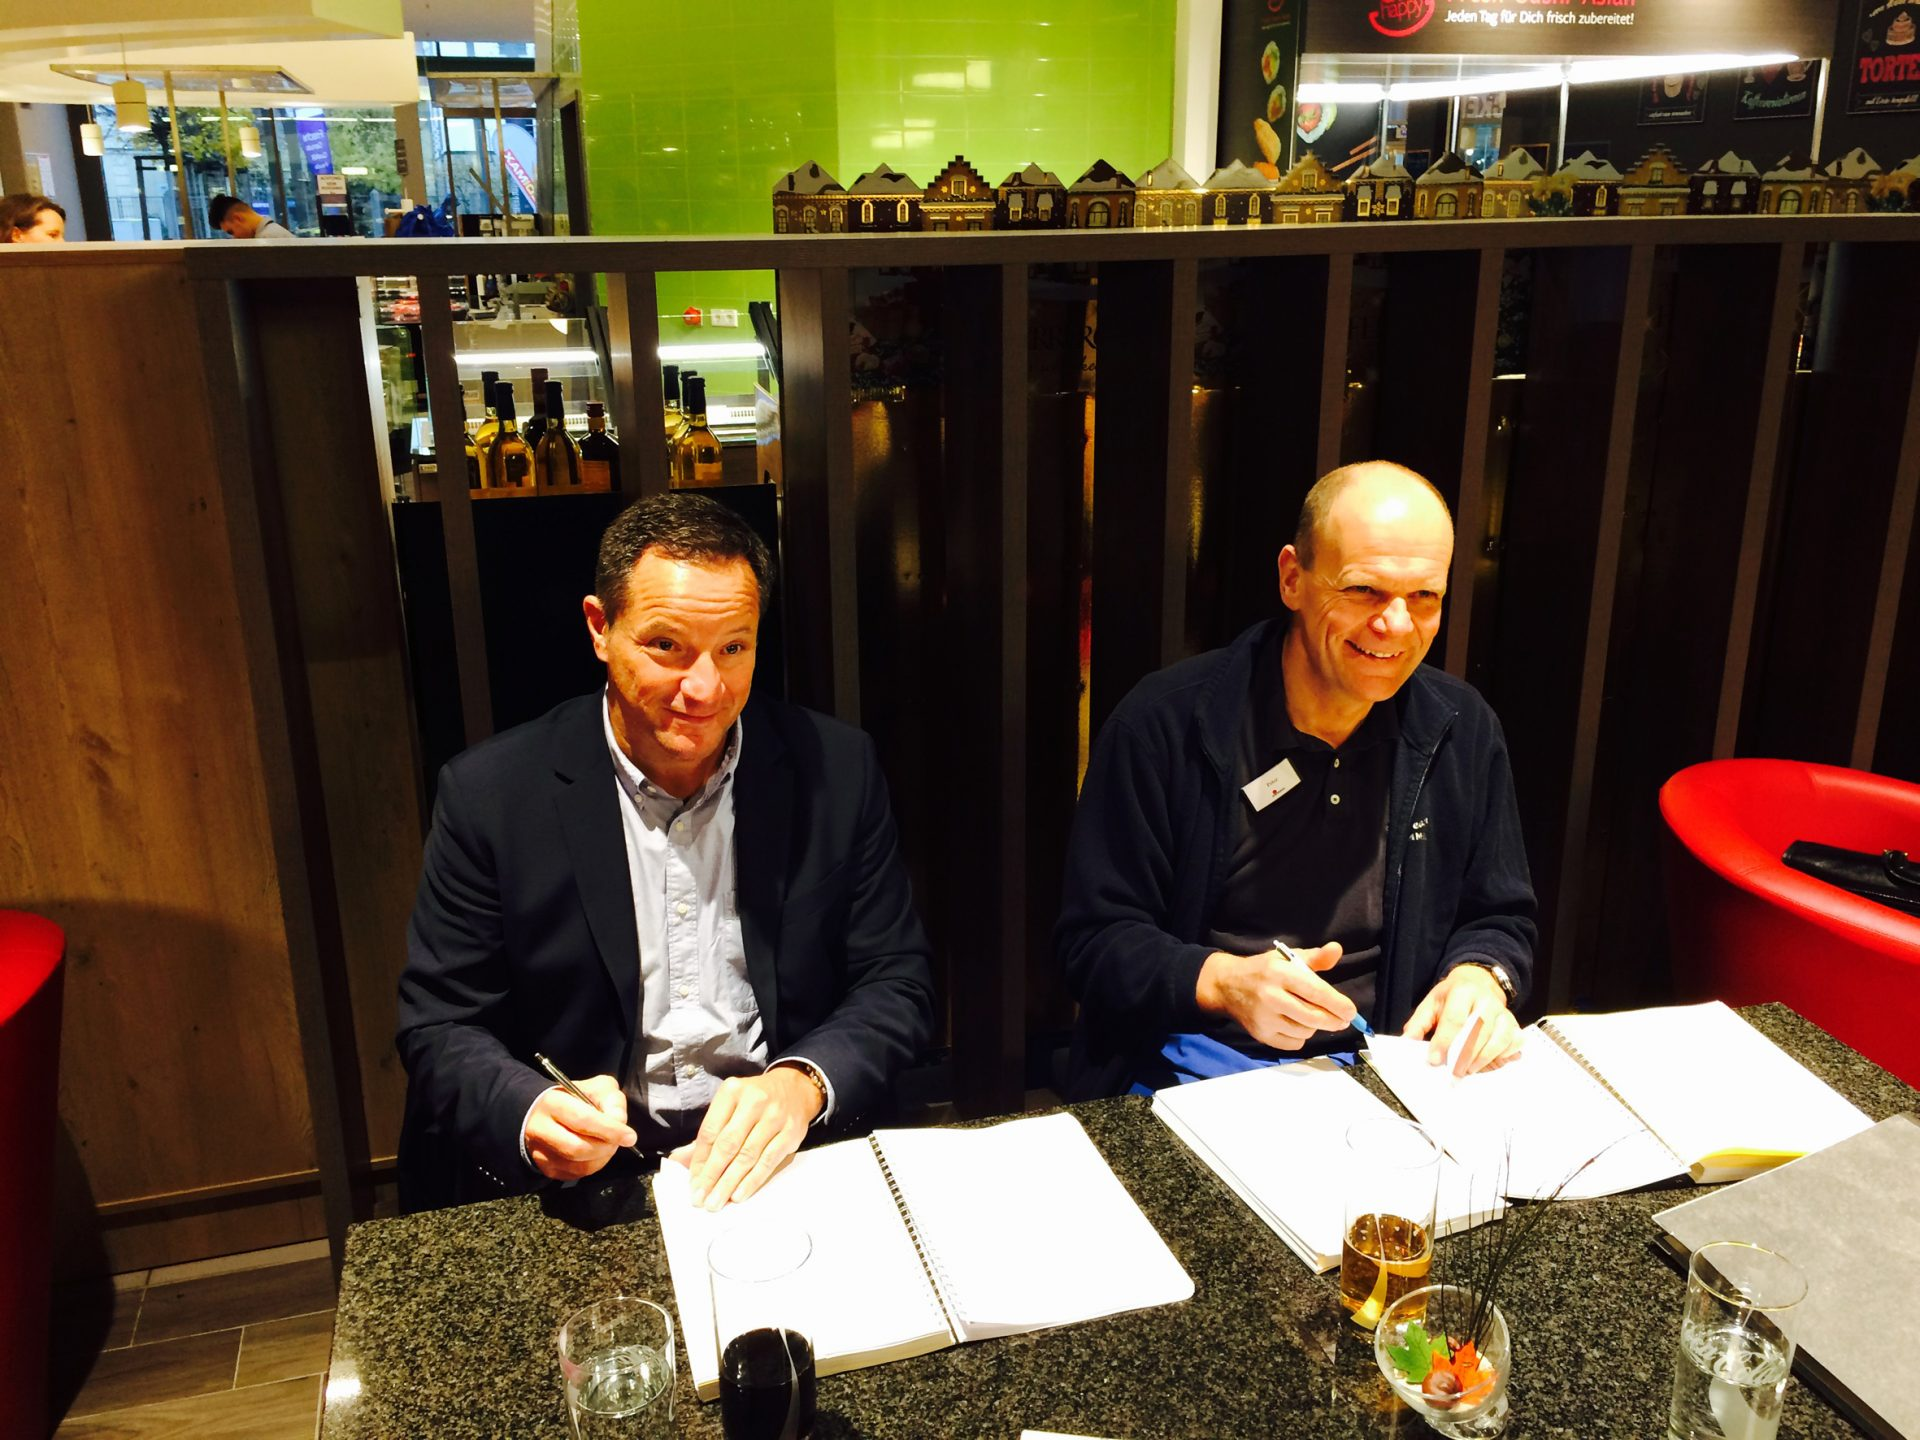 MEININGER - An agreement has been signed to open a new hotel in Dresden